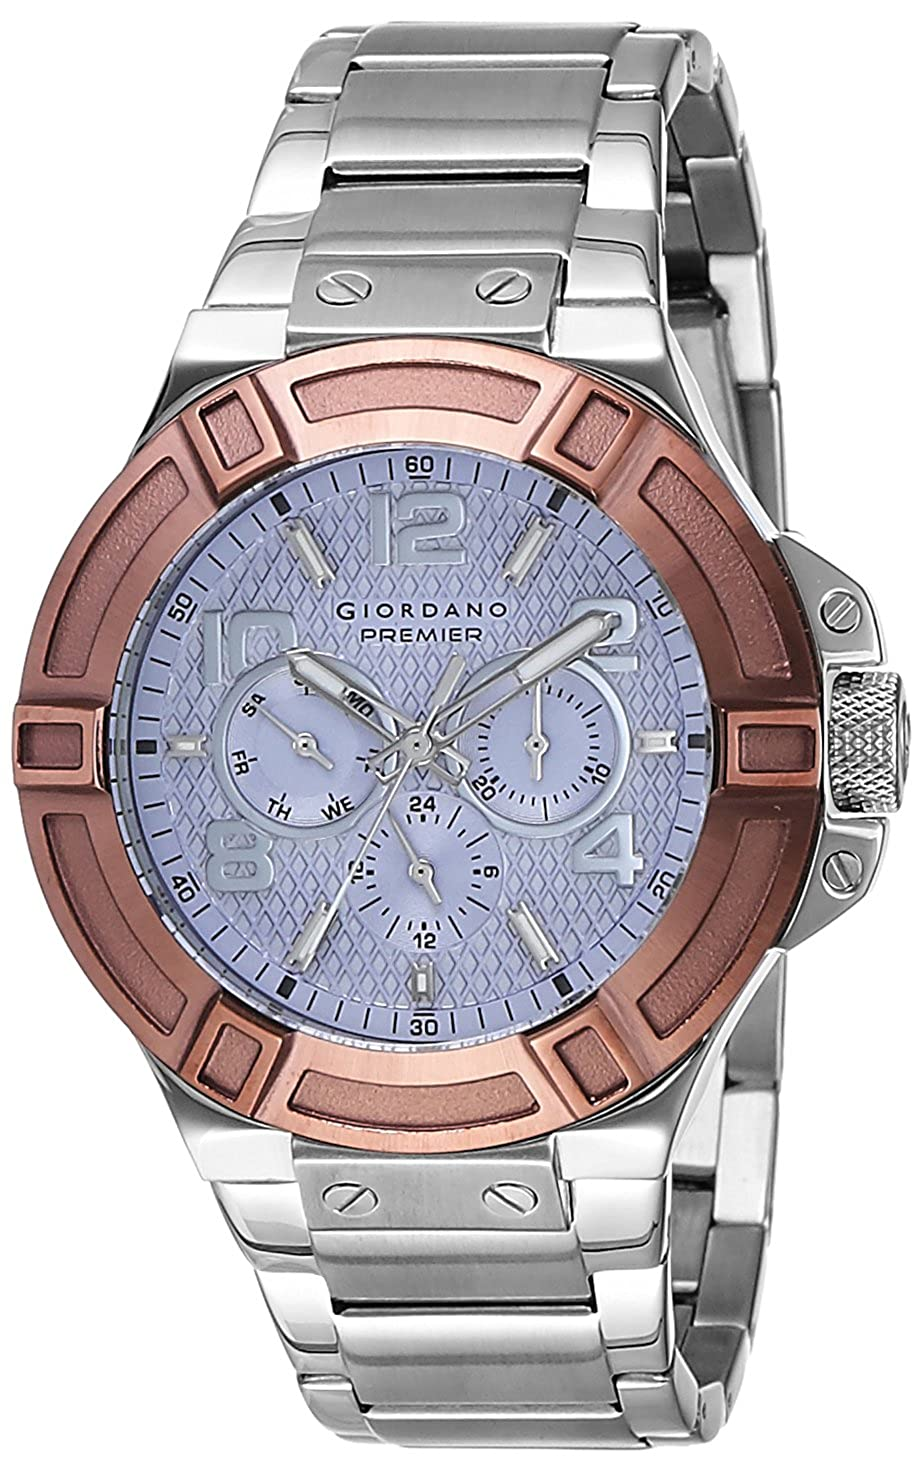 Giordano Watches – Upto 80% Off